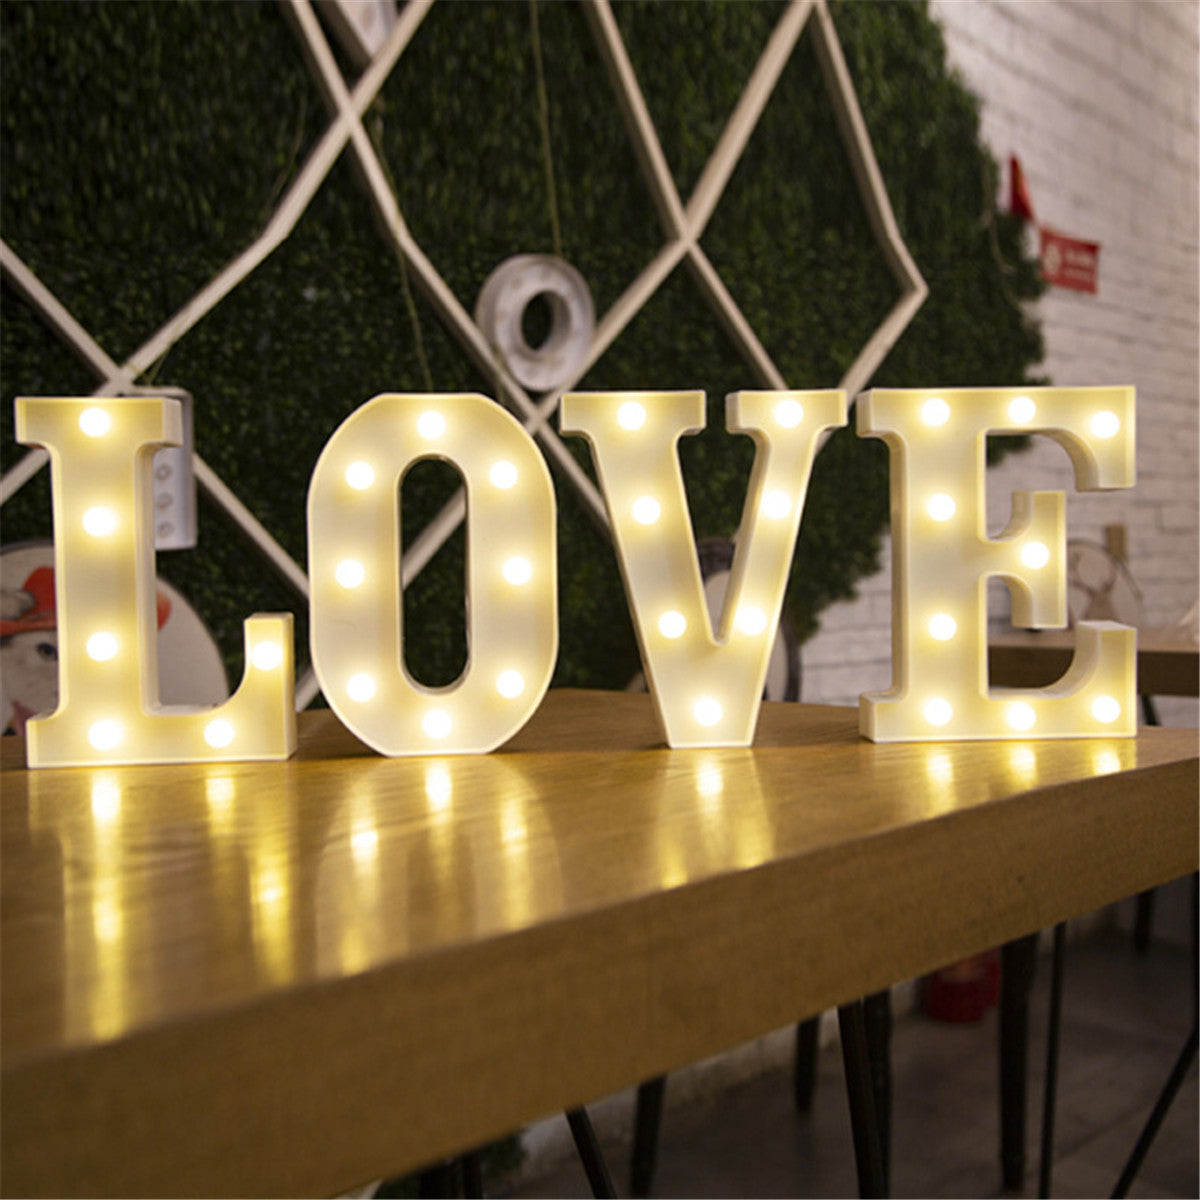 LED Luminous Light Up Letter - Urban Decor Outlet